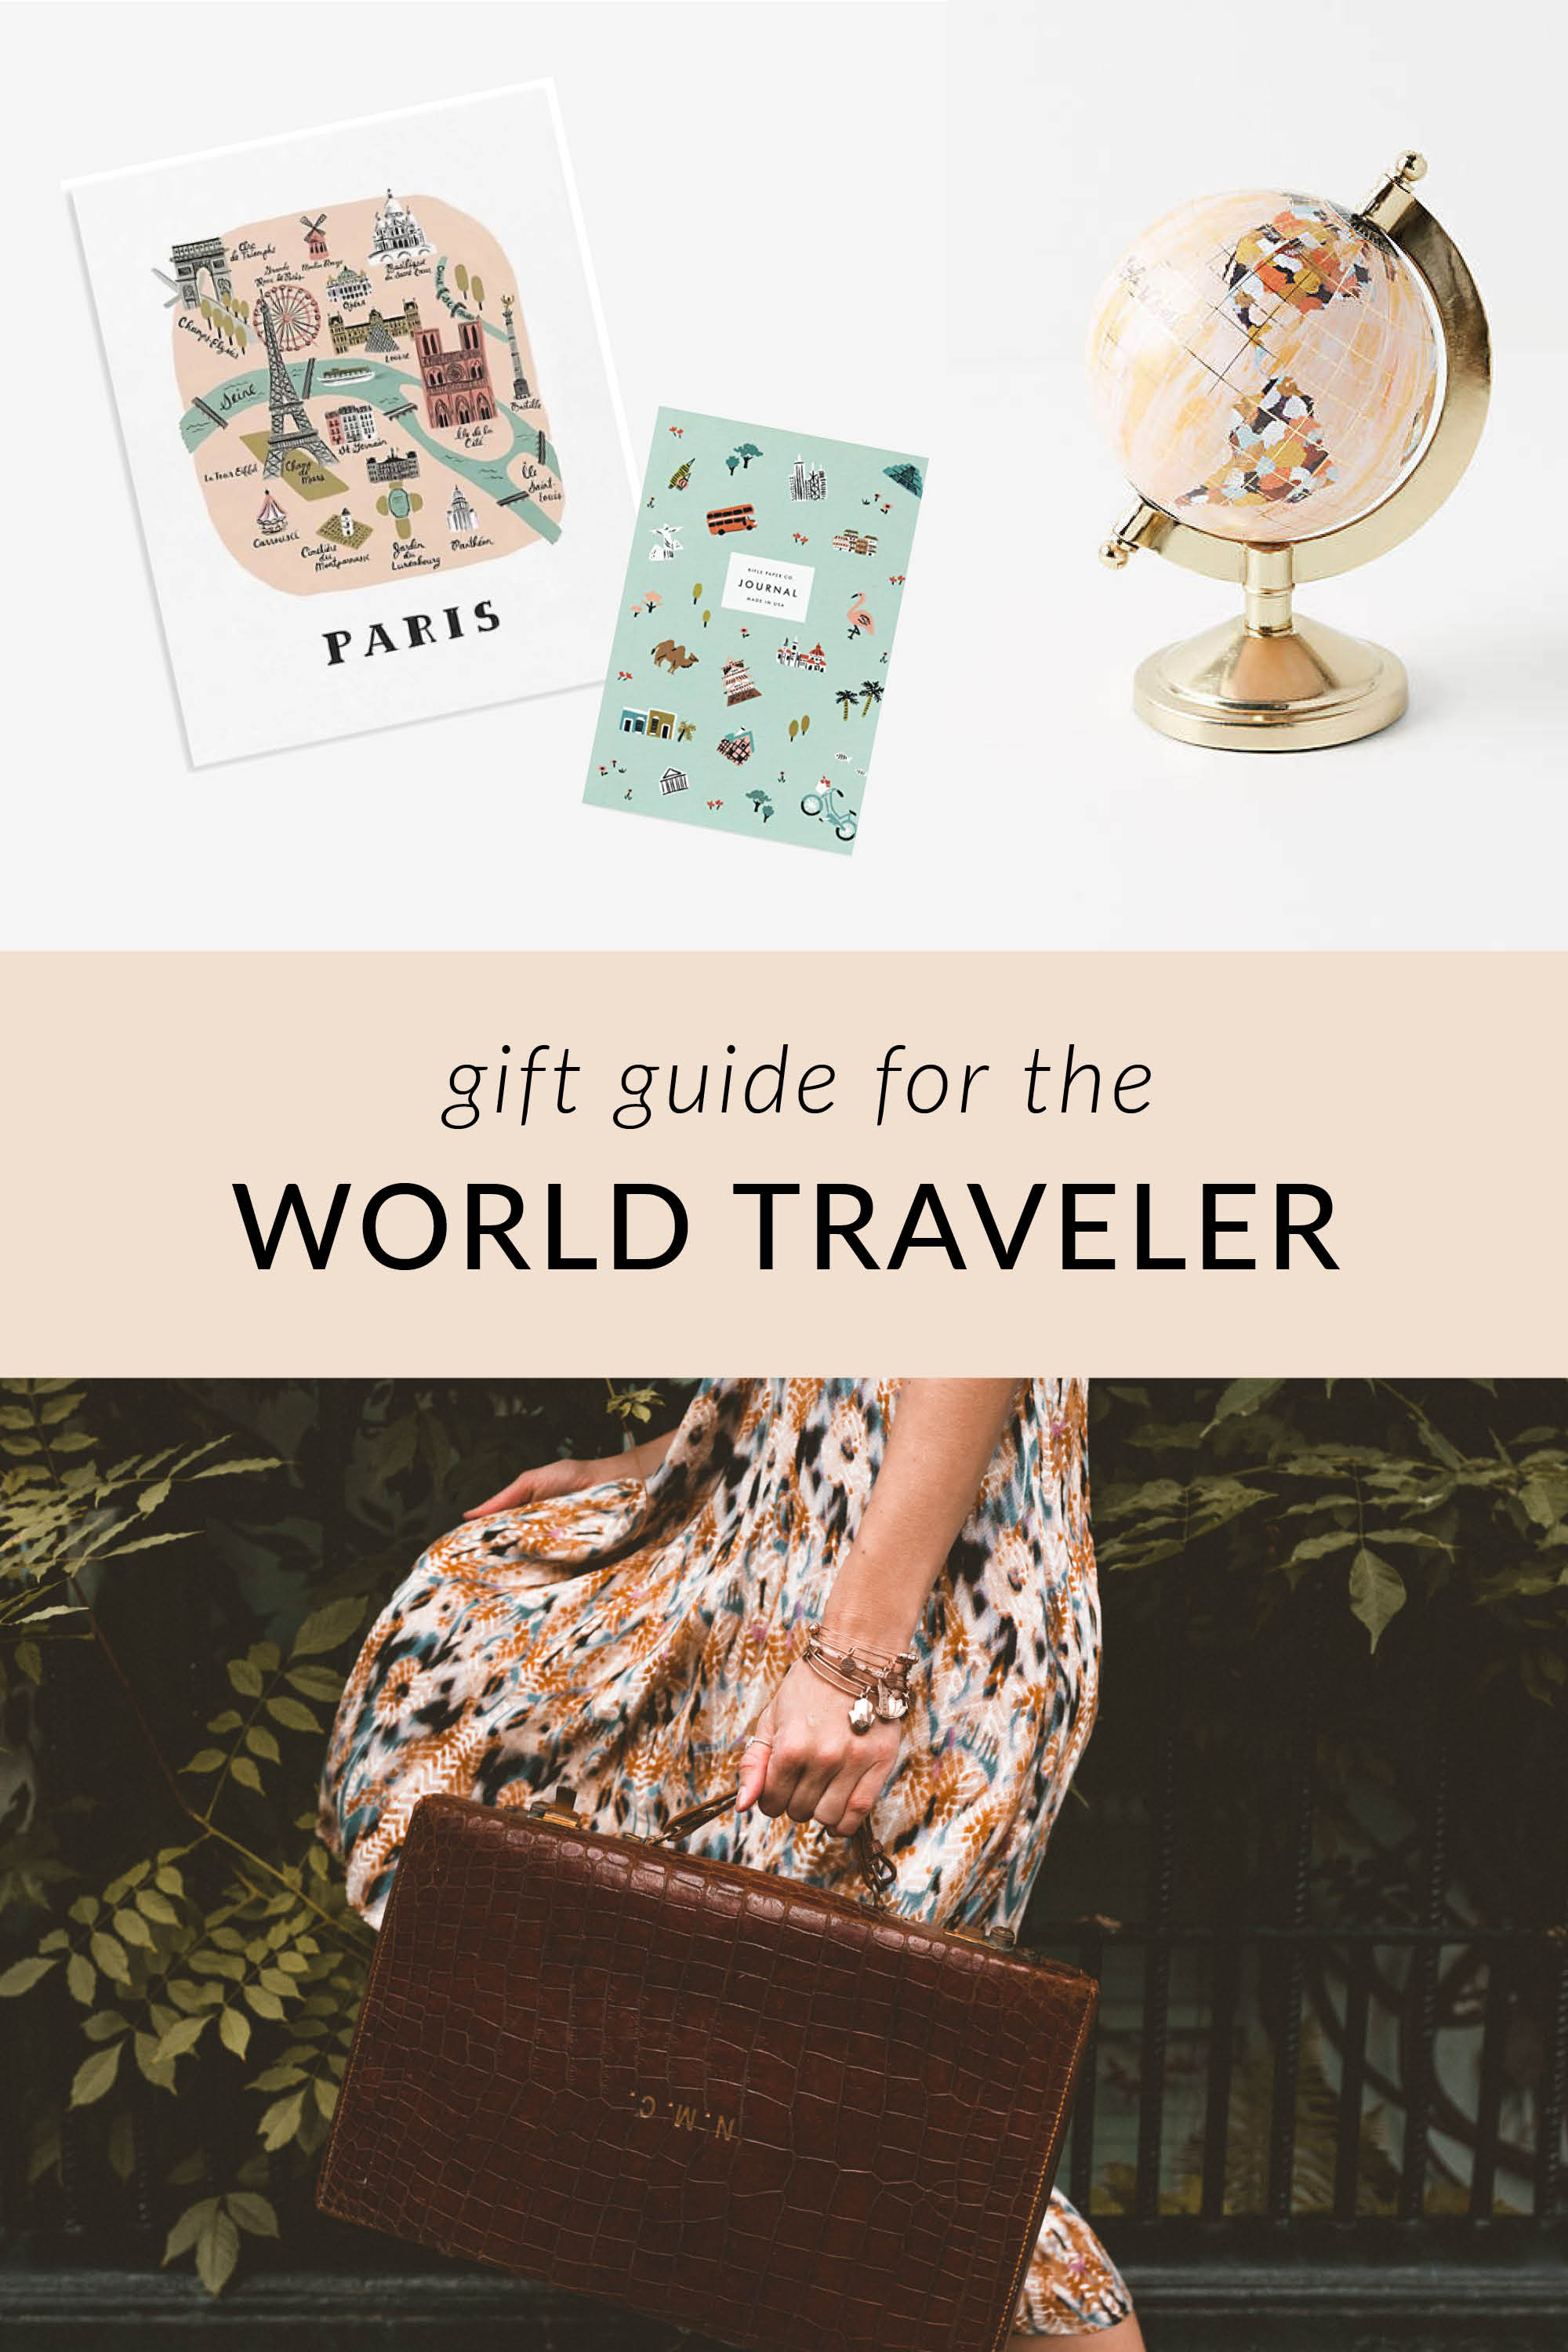 Gifts for the World Traveler | Gift Guide by Find Us Lost